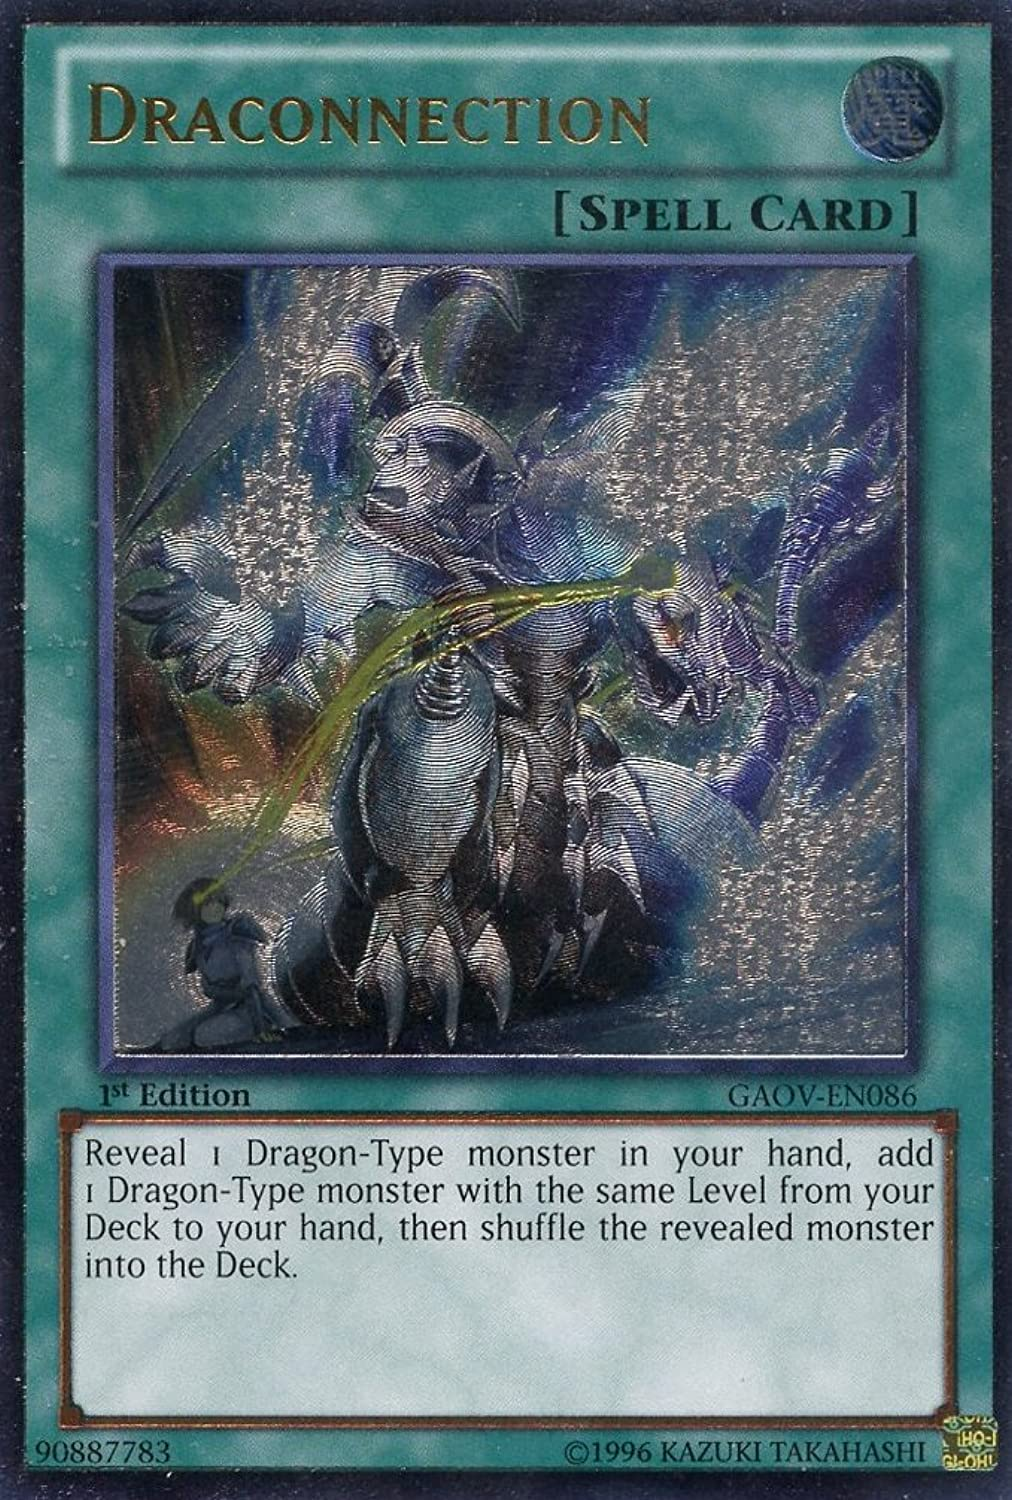 Yu-Gi-Oh  - Draconnection (GAOV-EN086) - Galactic Overlord - 1st Edition - Ultimate Rare